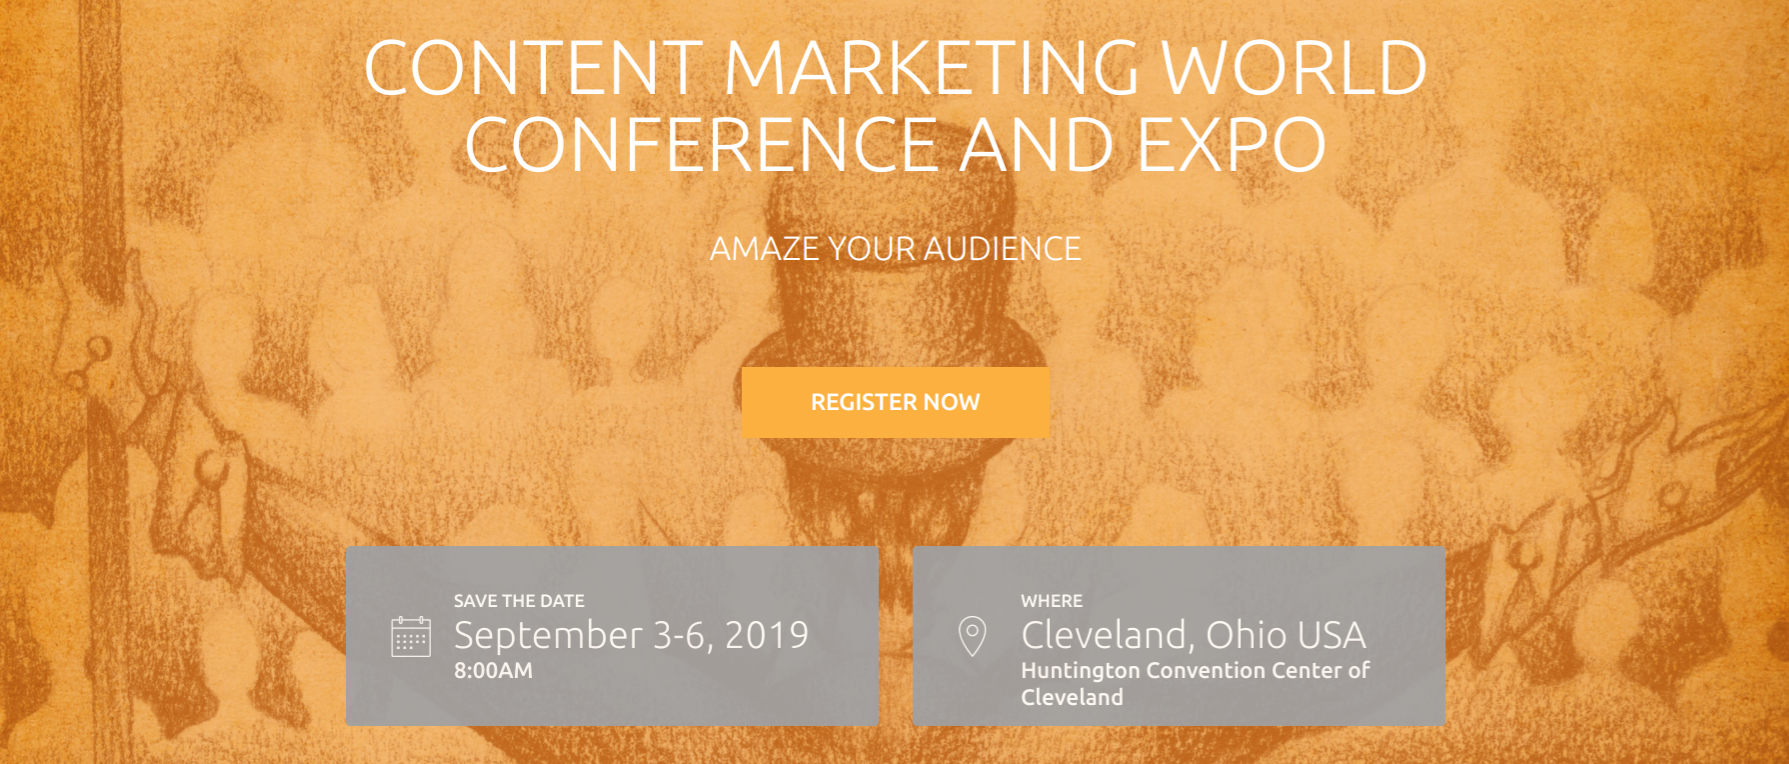 Content Marketing World 2019—September 3–6, 2019 in Cleveland, Ohio